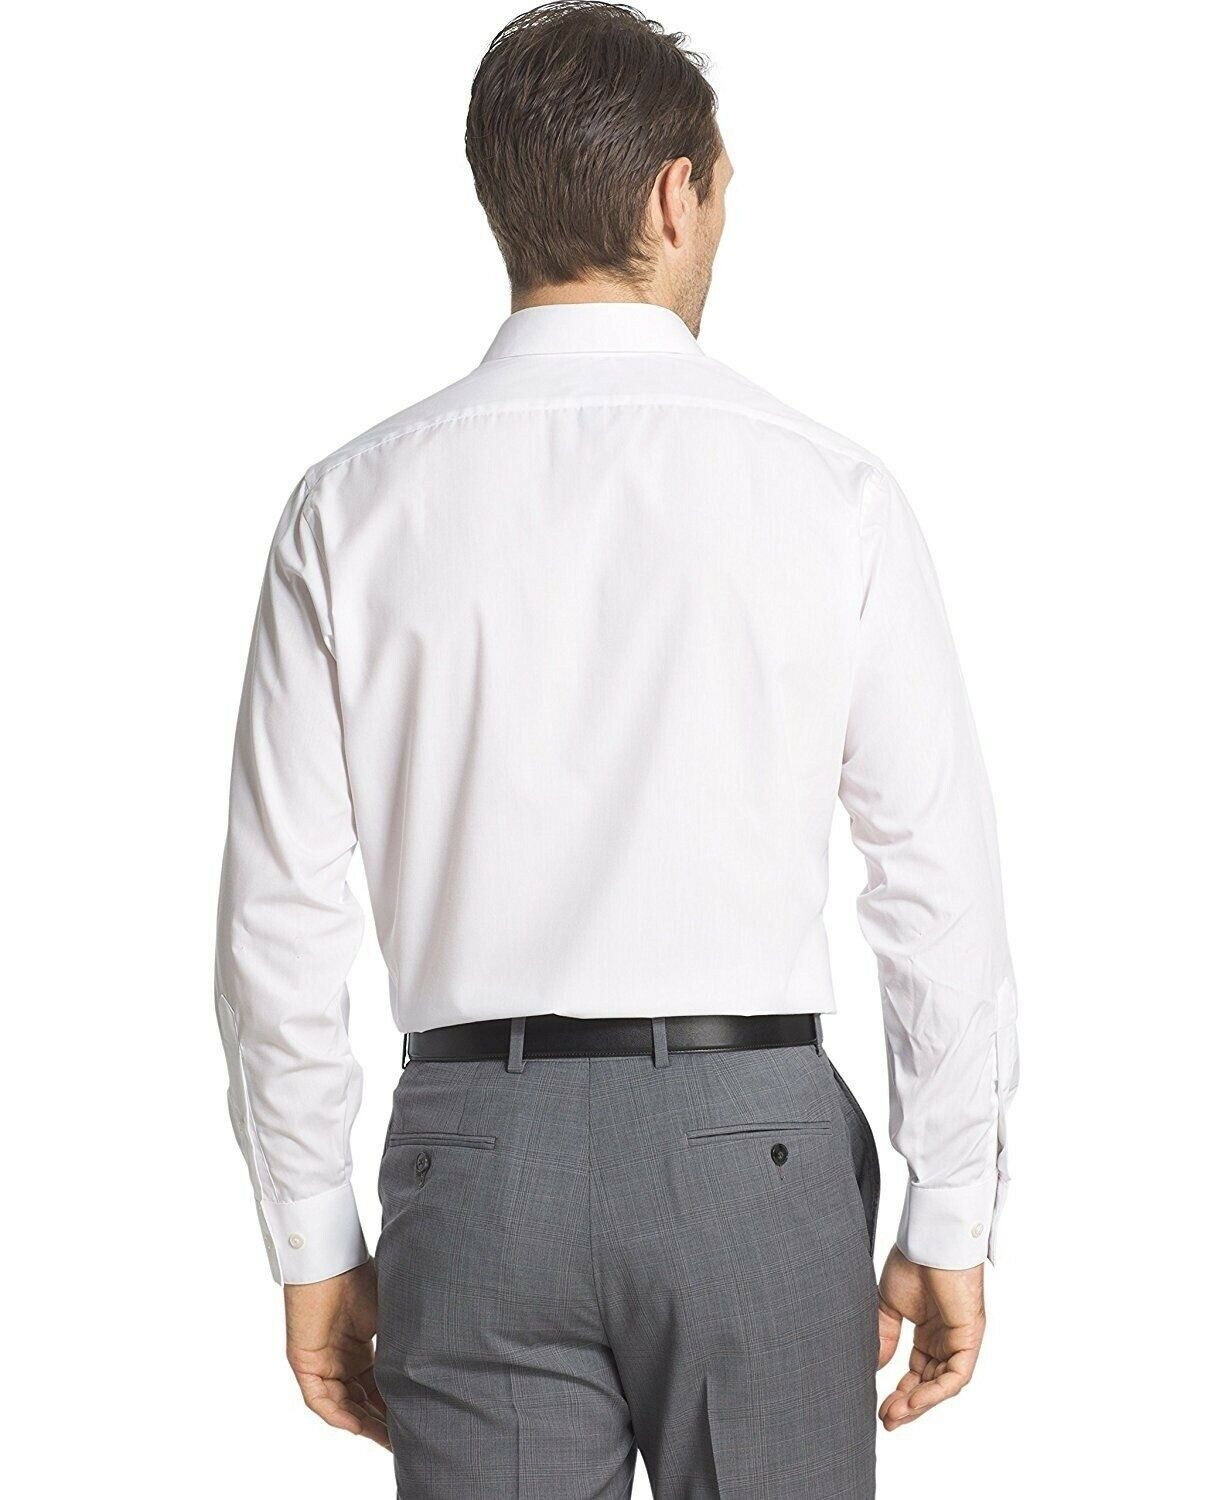 BERLIONI-ITALY-MEN-039-S-PRIME-FRENCH-CONVERTIBLE-CUFF-SOLID-DRESS-SHIRT-WHITE thumbnail 44